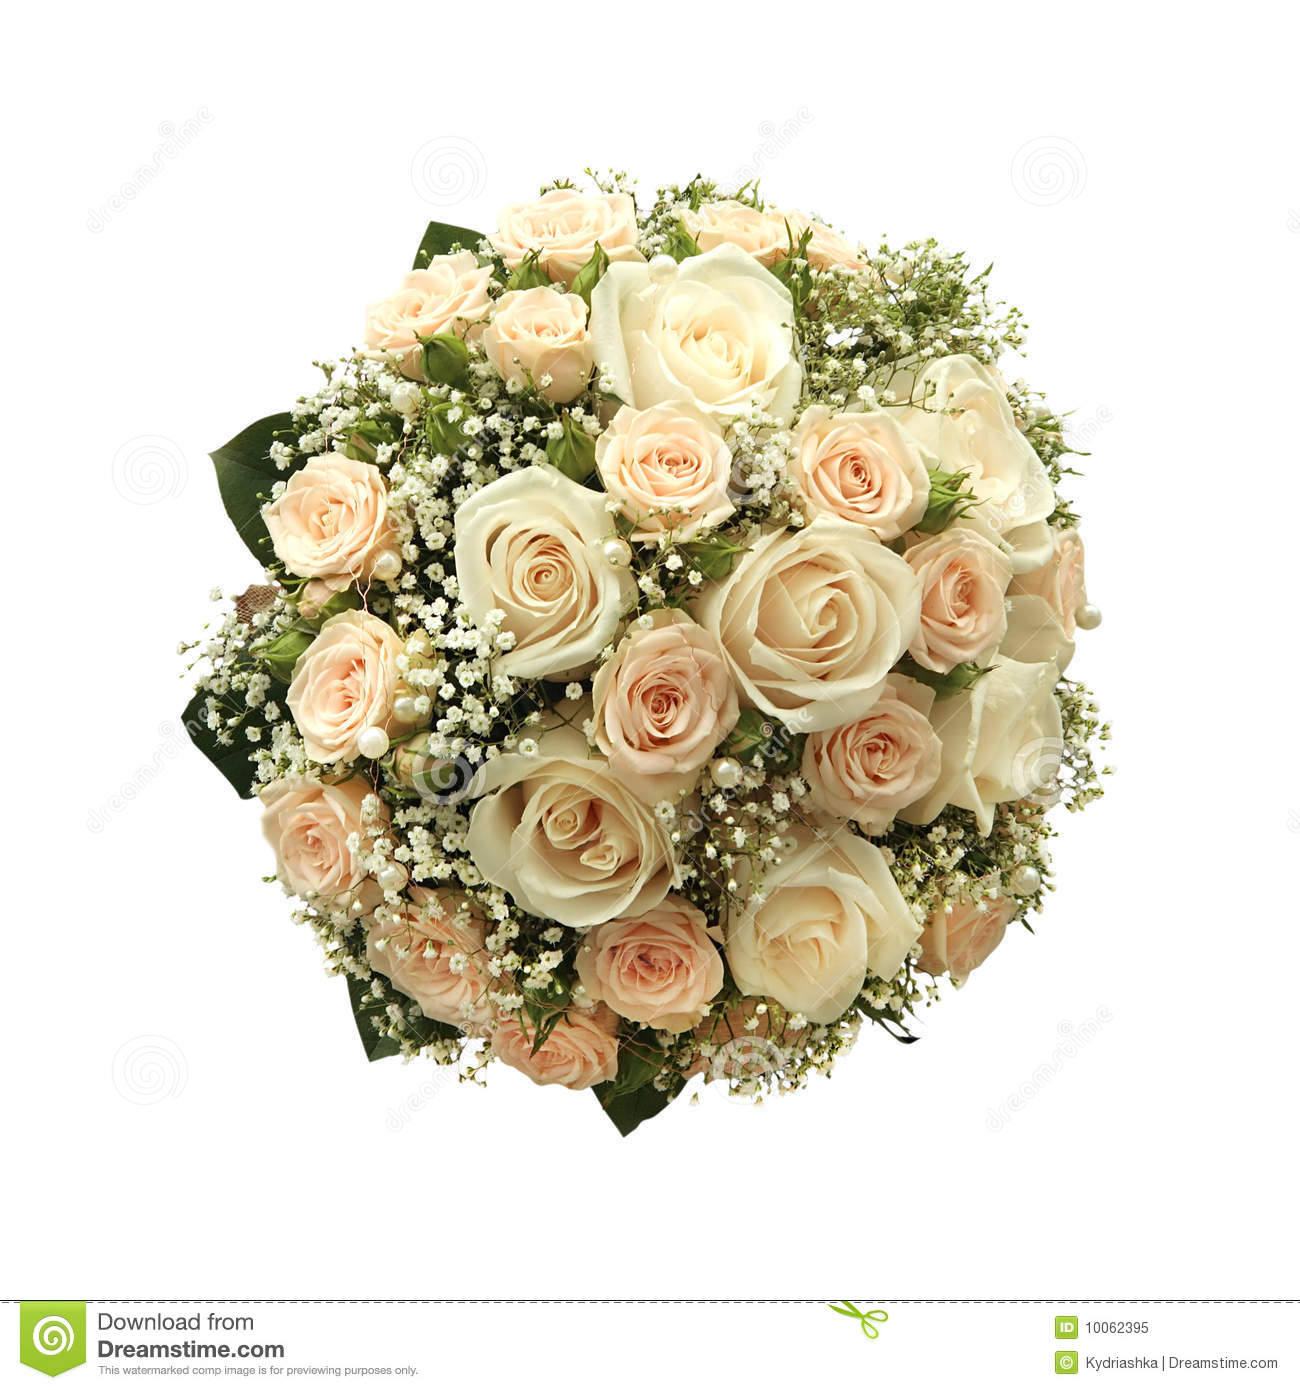 white wedding bouquet wallpaper - photo #11